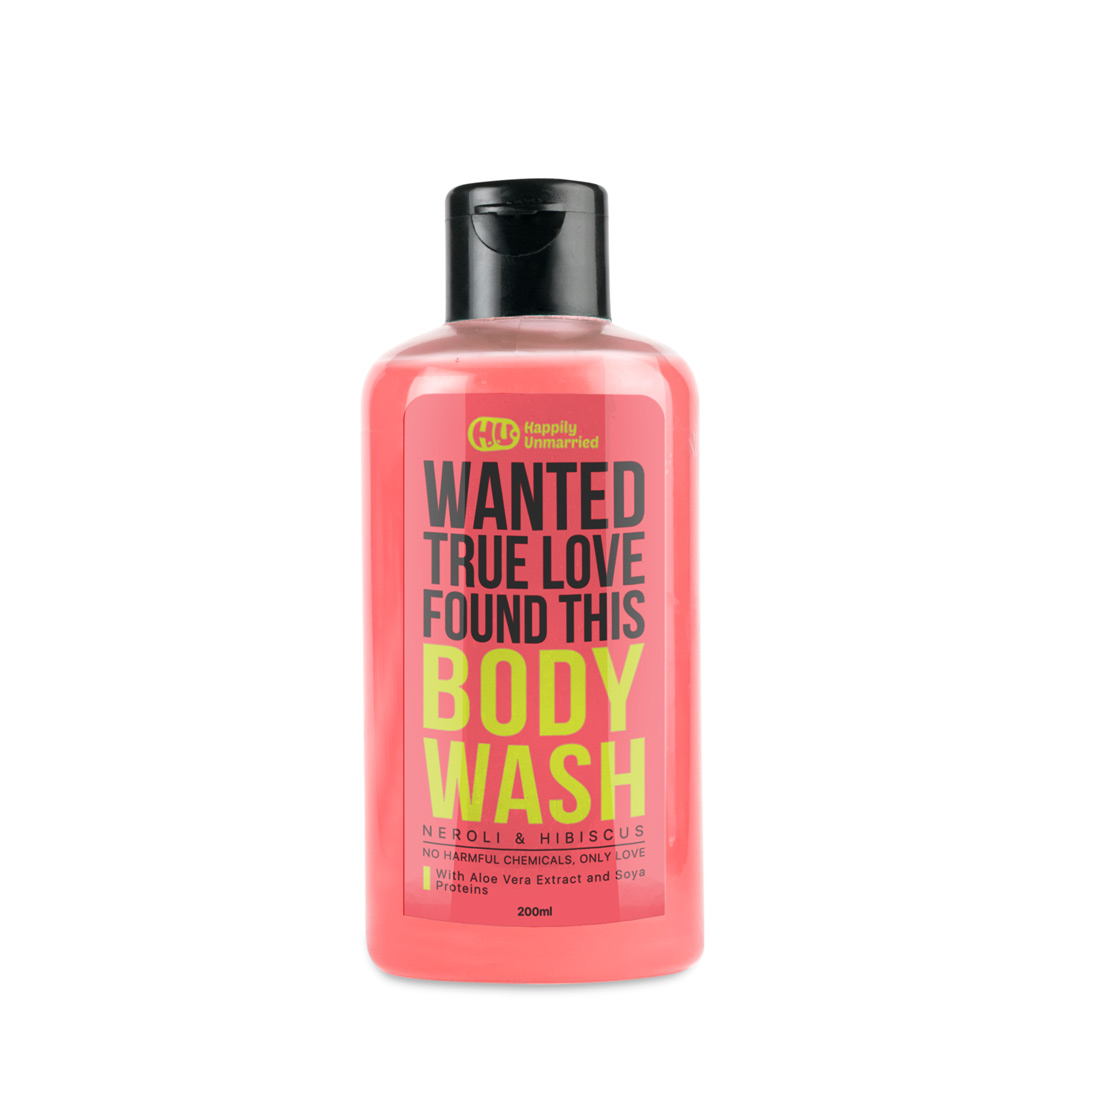 Body Wash - Neroli & Hibiscus - 200ml